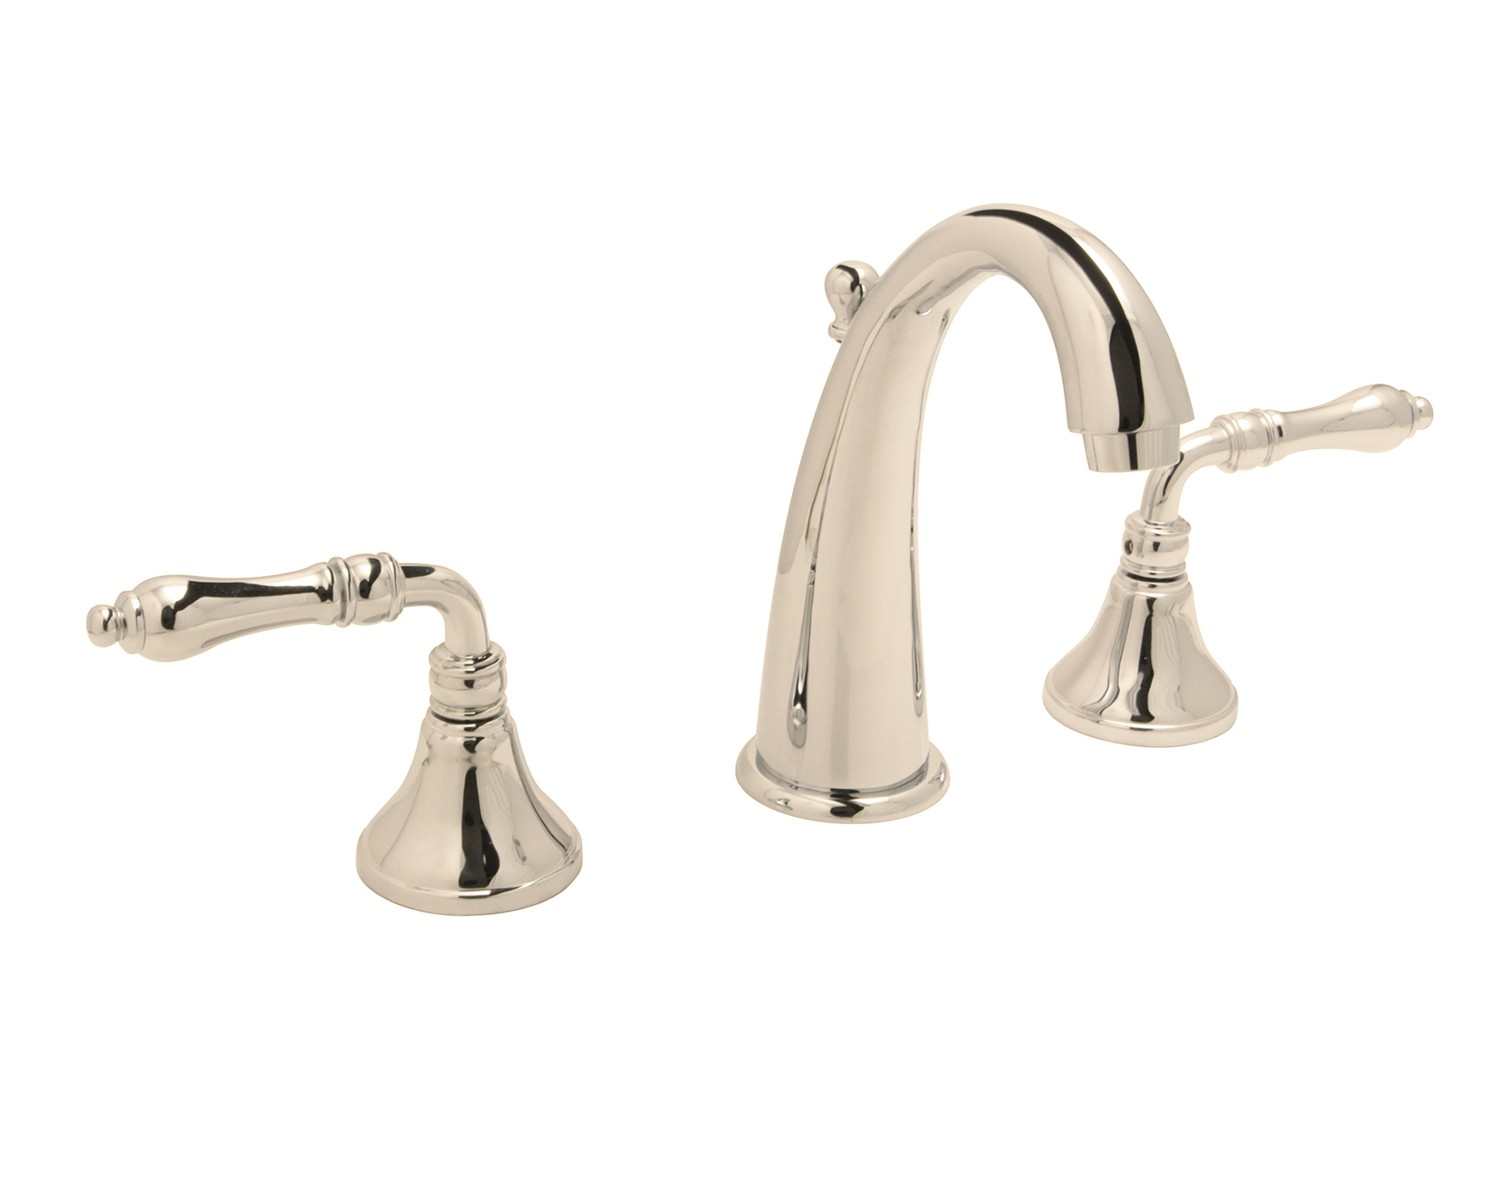 Jewel Widespread Faucet W4560214-11